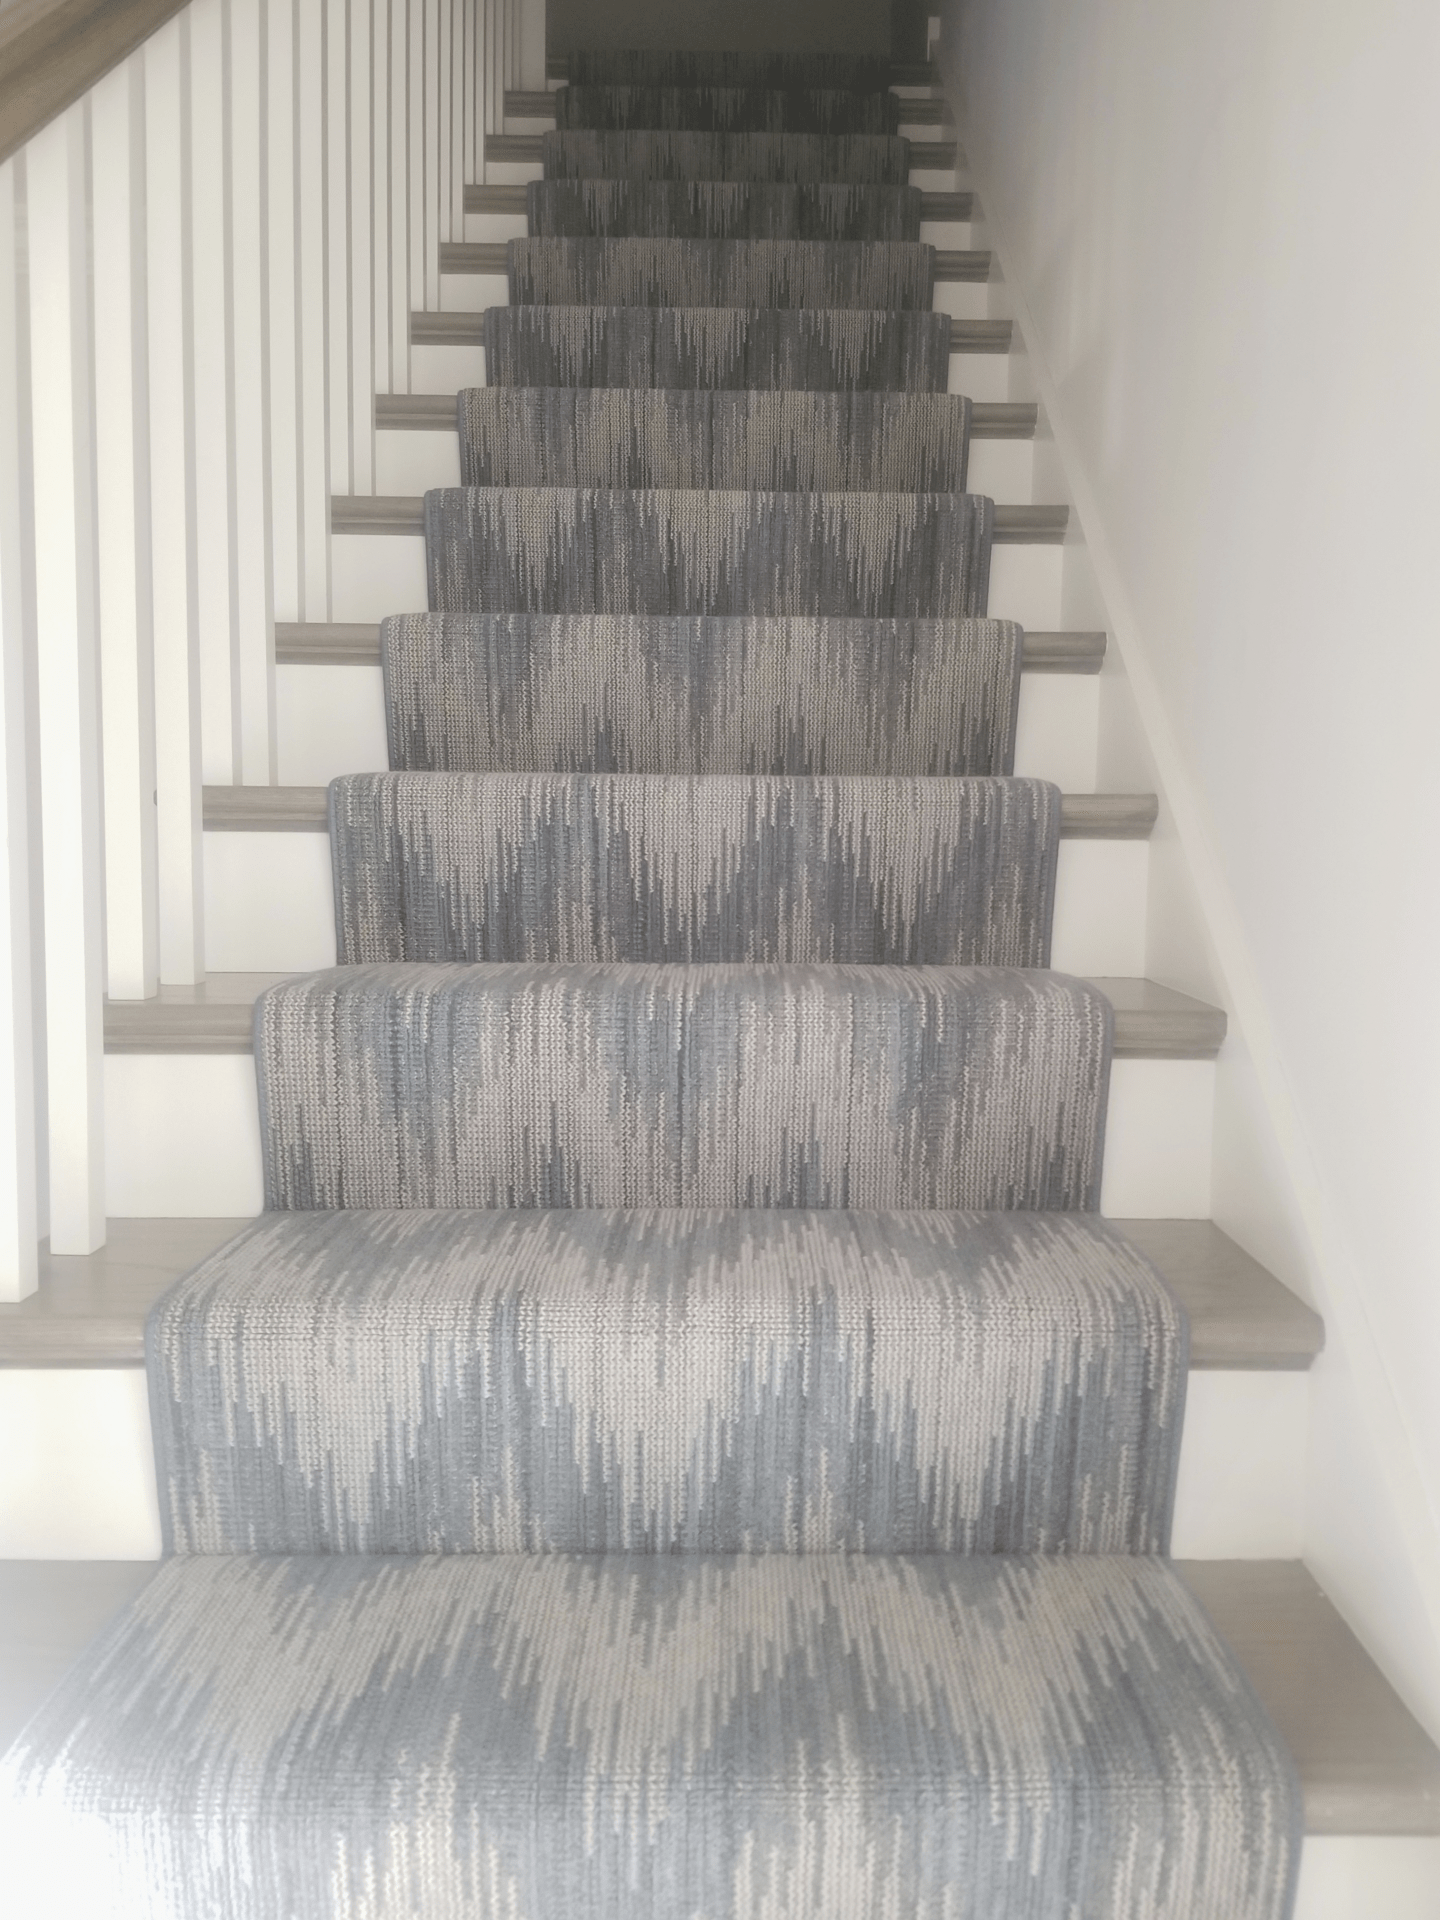 Stair Carpet Gain Inspiration And View Stair Carpet Projects | Printed Carpet For Stairs | High Traffic | Gray | Karastan Patterned | Georgian | Middle Open Concept